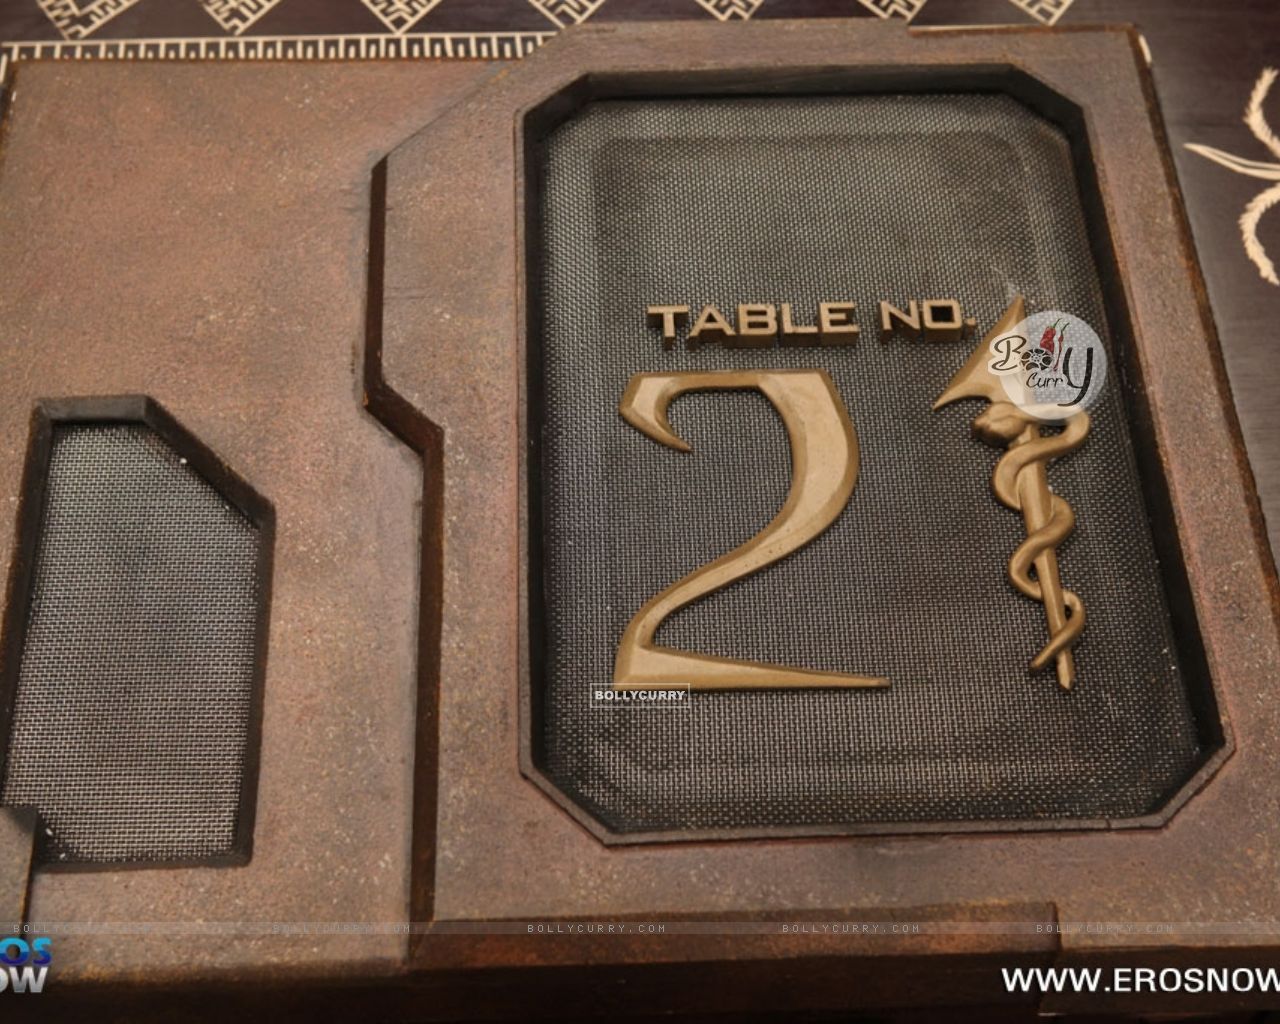 Table No 21 Mp3 Songs Free Download Songs.Pk